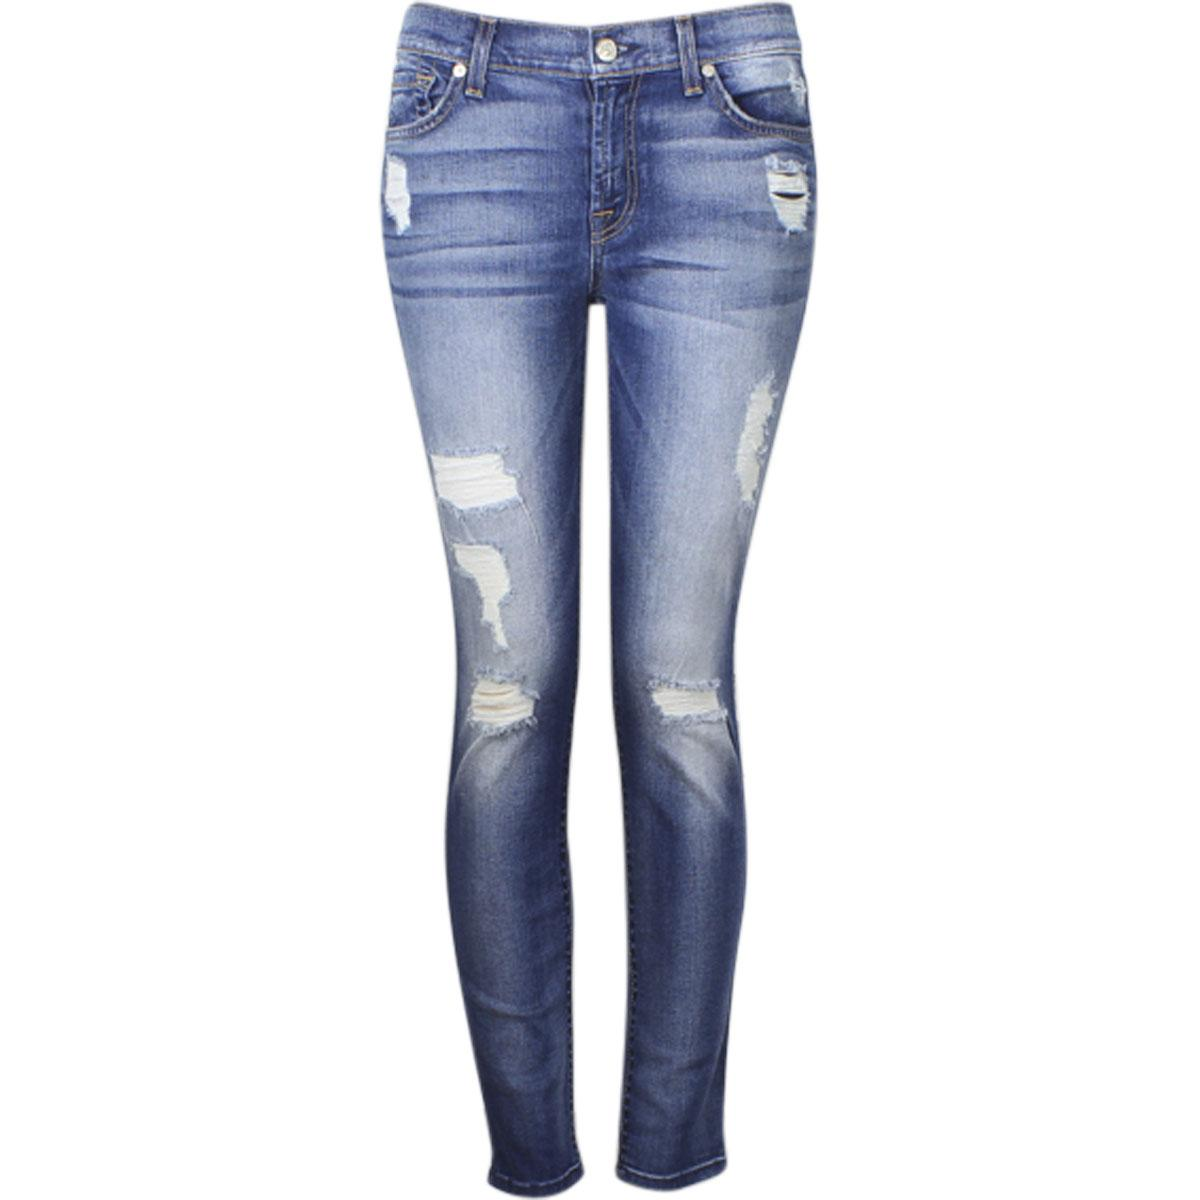 Image of 7 For All Mankind Women's The Ankle Skinny Short Inseam Jeans - Blue - 26 (1/2)